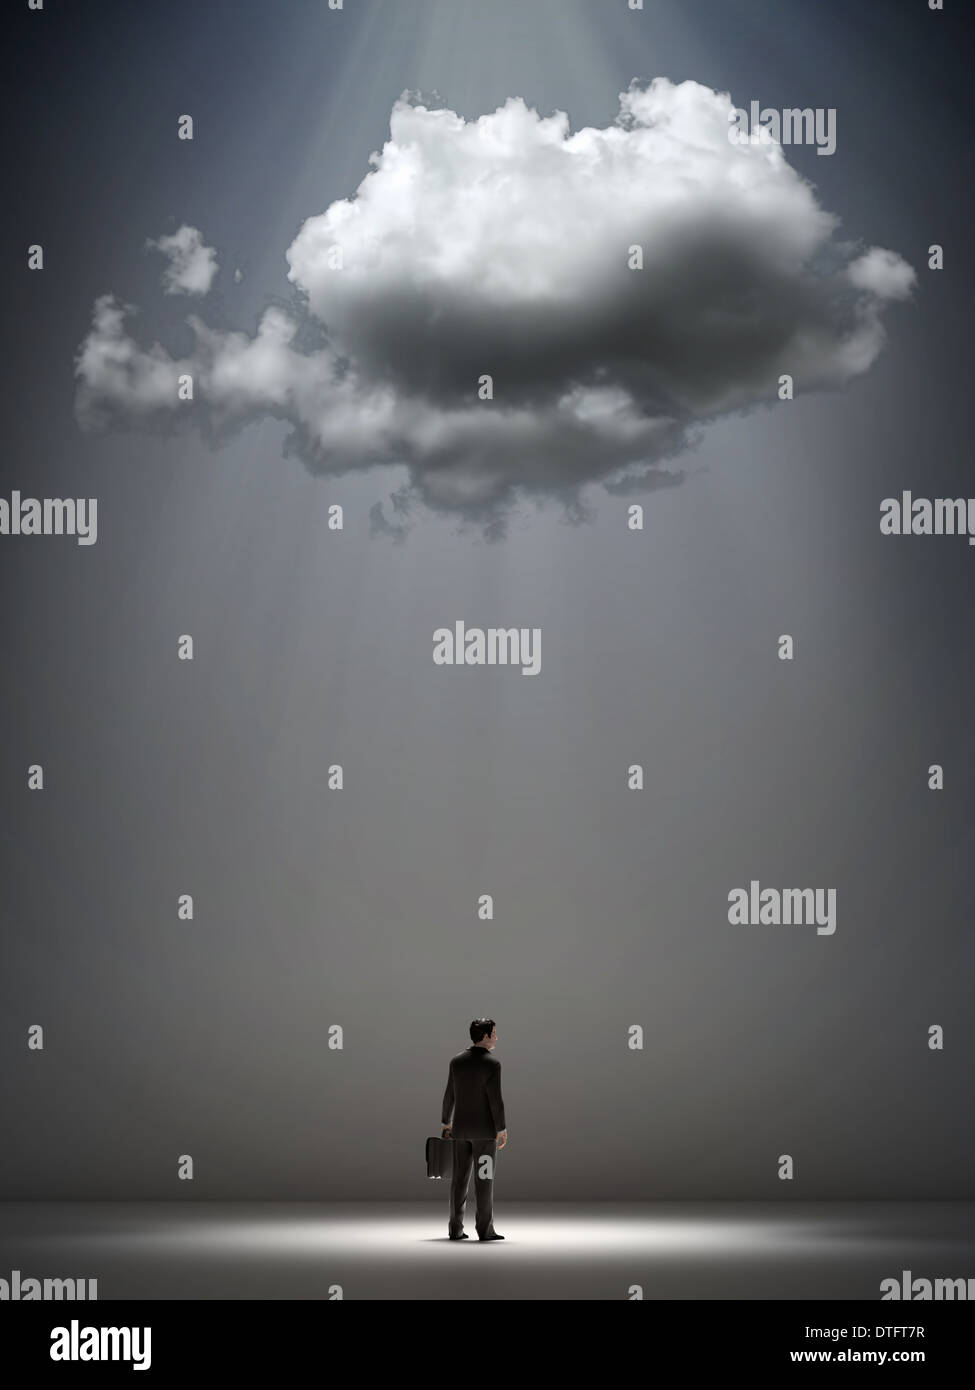 A cloud over a businessman - straggle and opportunity concept - Stock Image